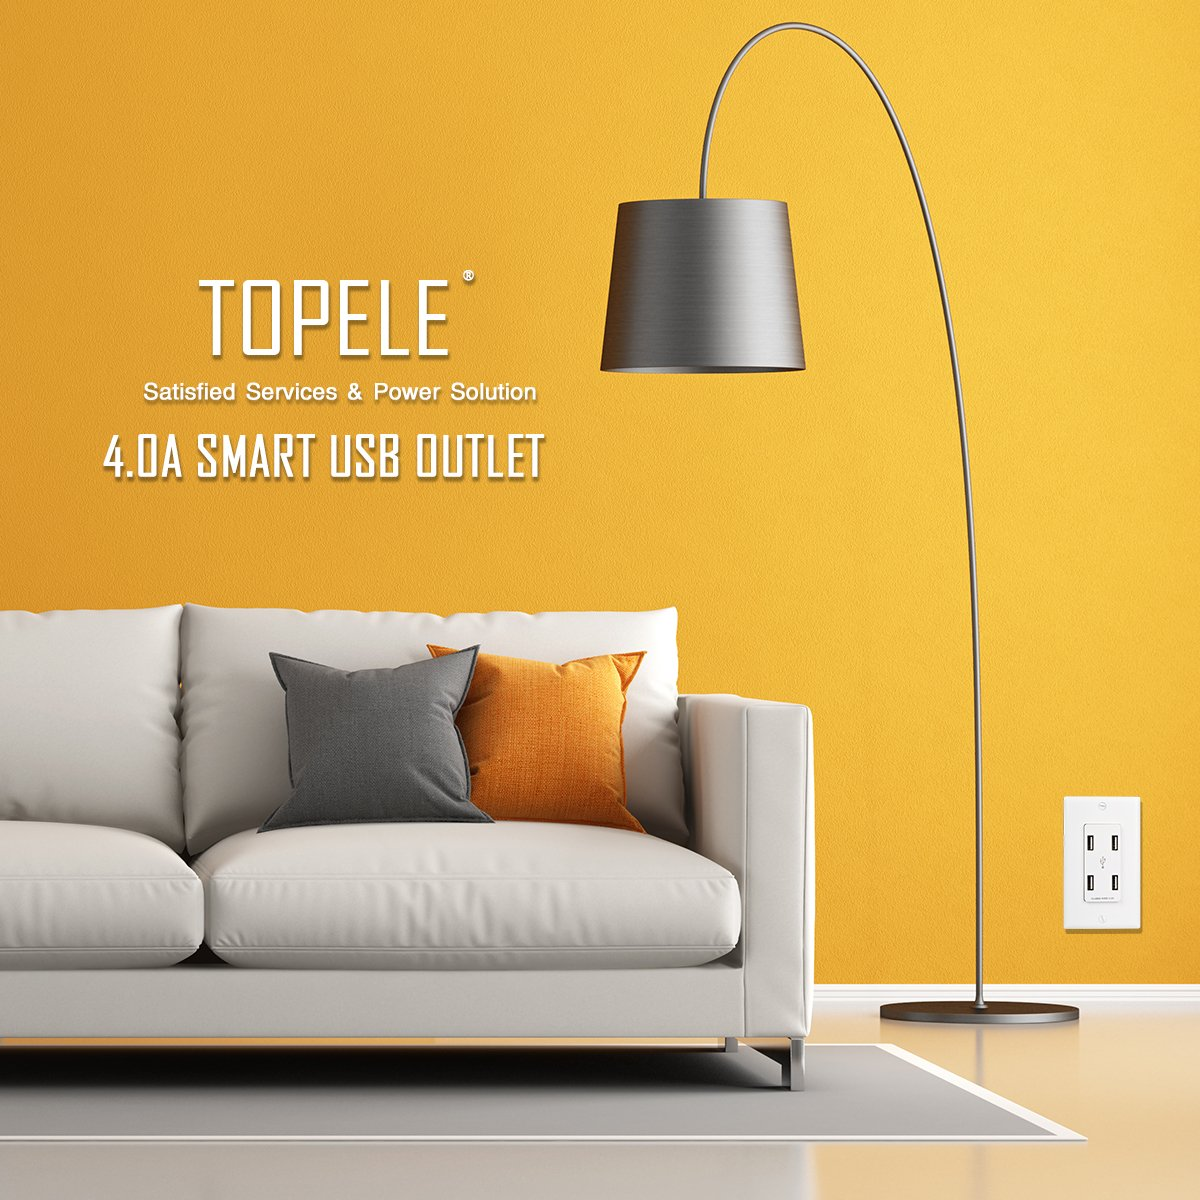 topele 4 0a high speed usb wall outlet 4 usb ports charger wall rh amazon com